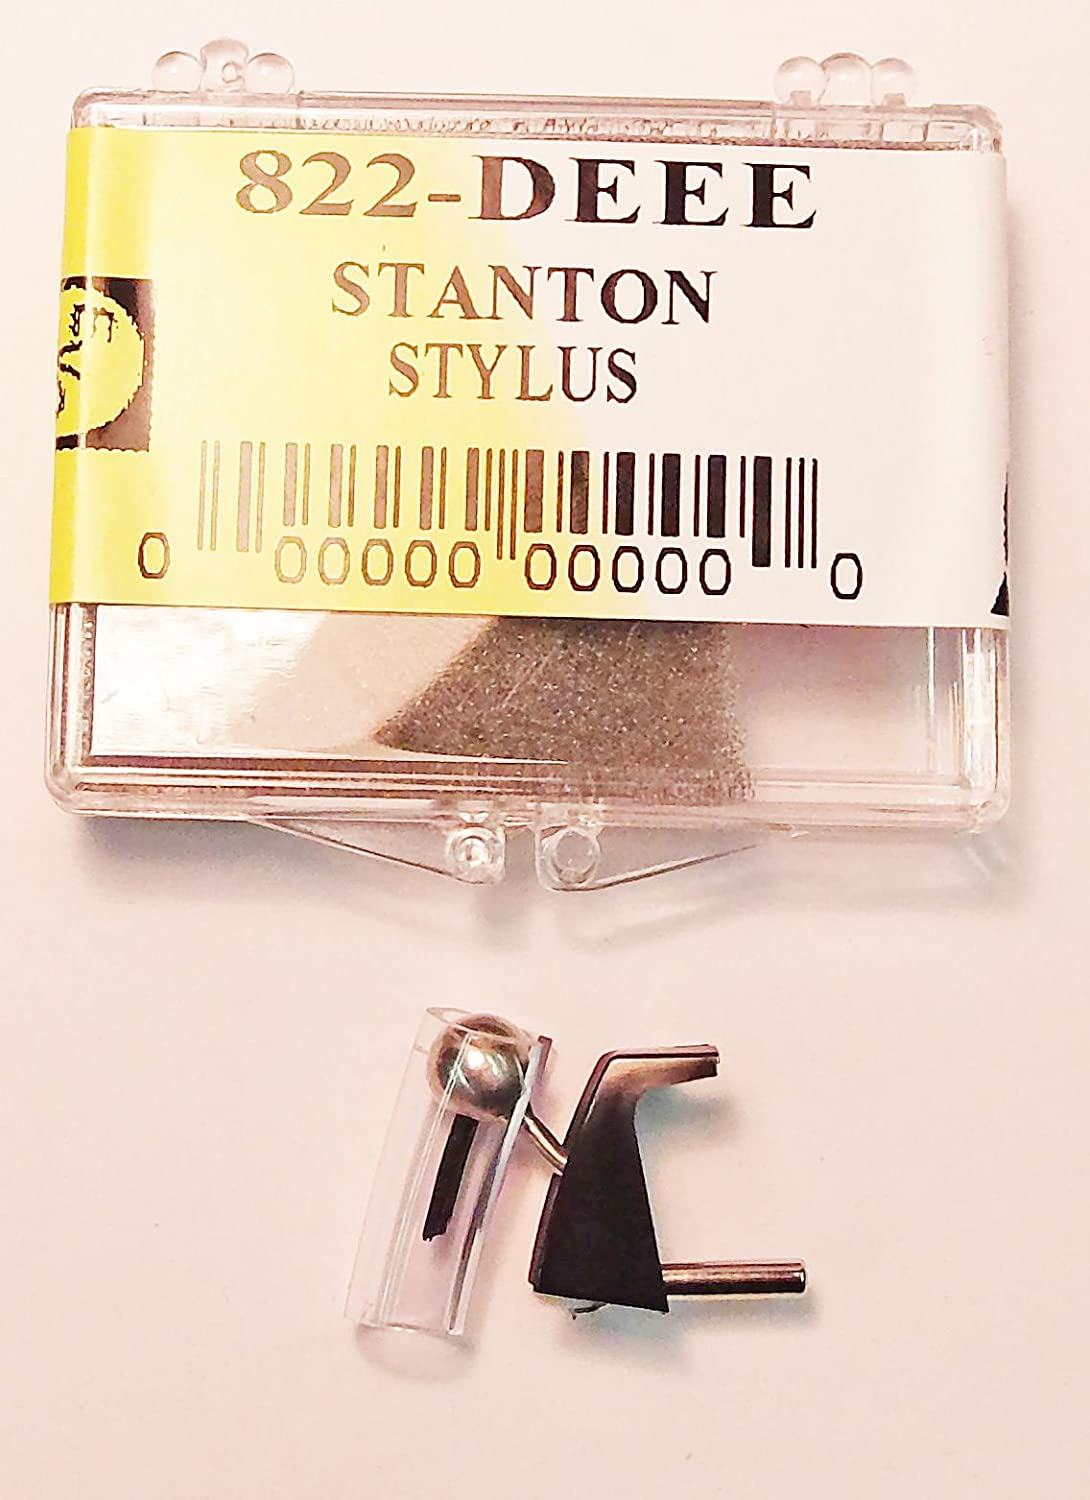 PM4216DE 822-DEEE TURNTABLE STYLUS NEEDLE for Stanton D6800-EEE 681-EEE